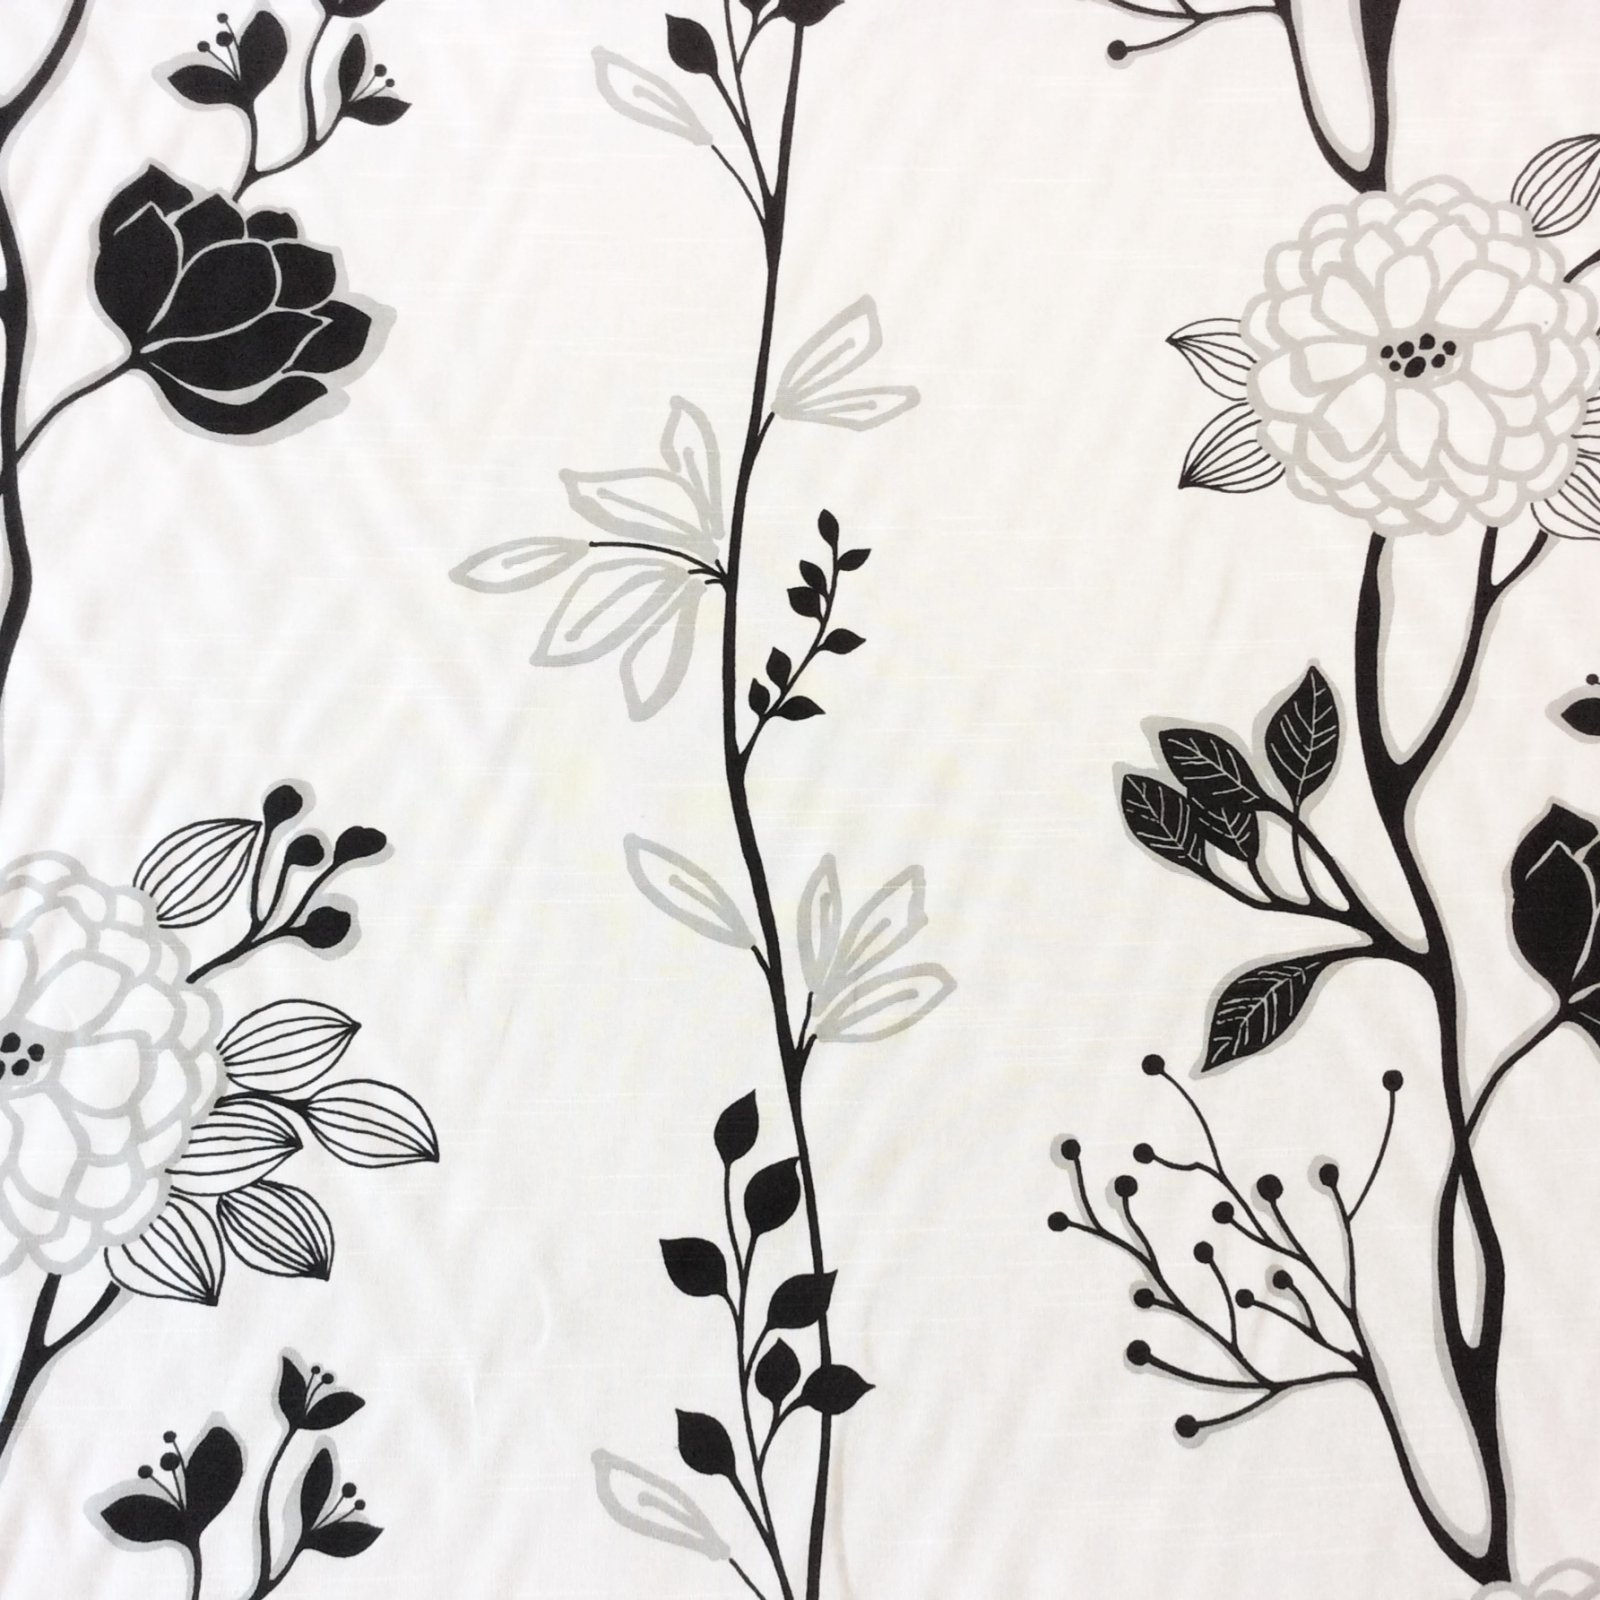 Bold Graphic Floral Black Ivory Grey Modern Design Cotton Linen Fabric Drapery Fabric HDA026